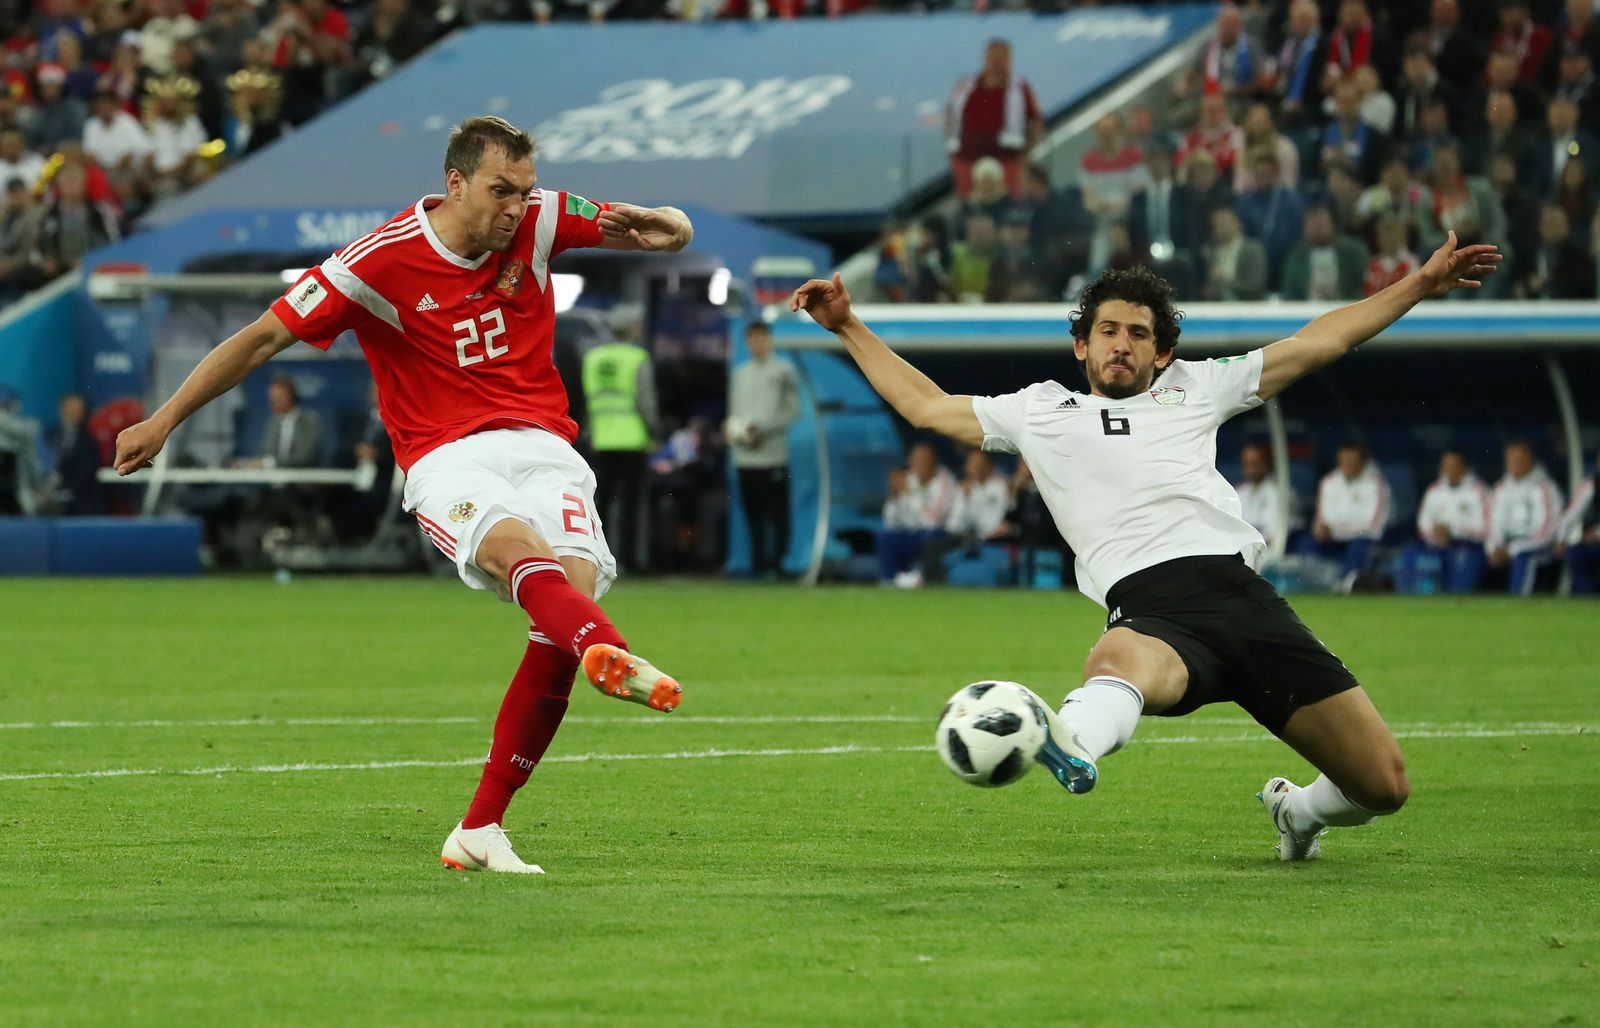 SOCCER-WORLDCUP-RUS-EGY/